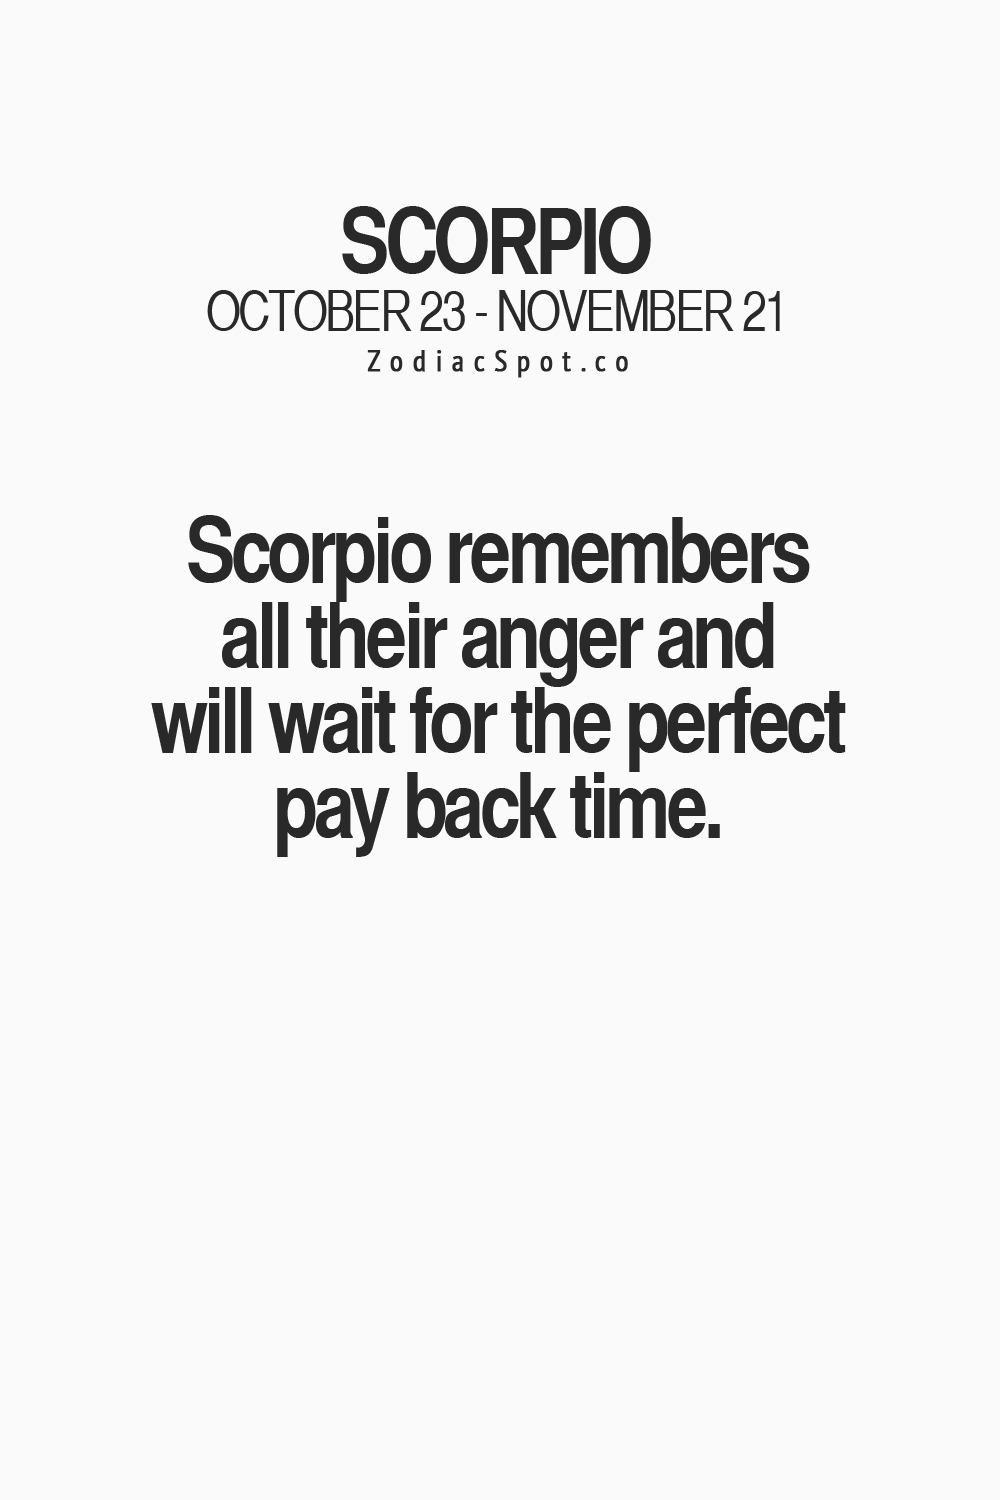 Apt quotes about each sign of the zodiac. And you are there